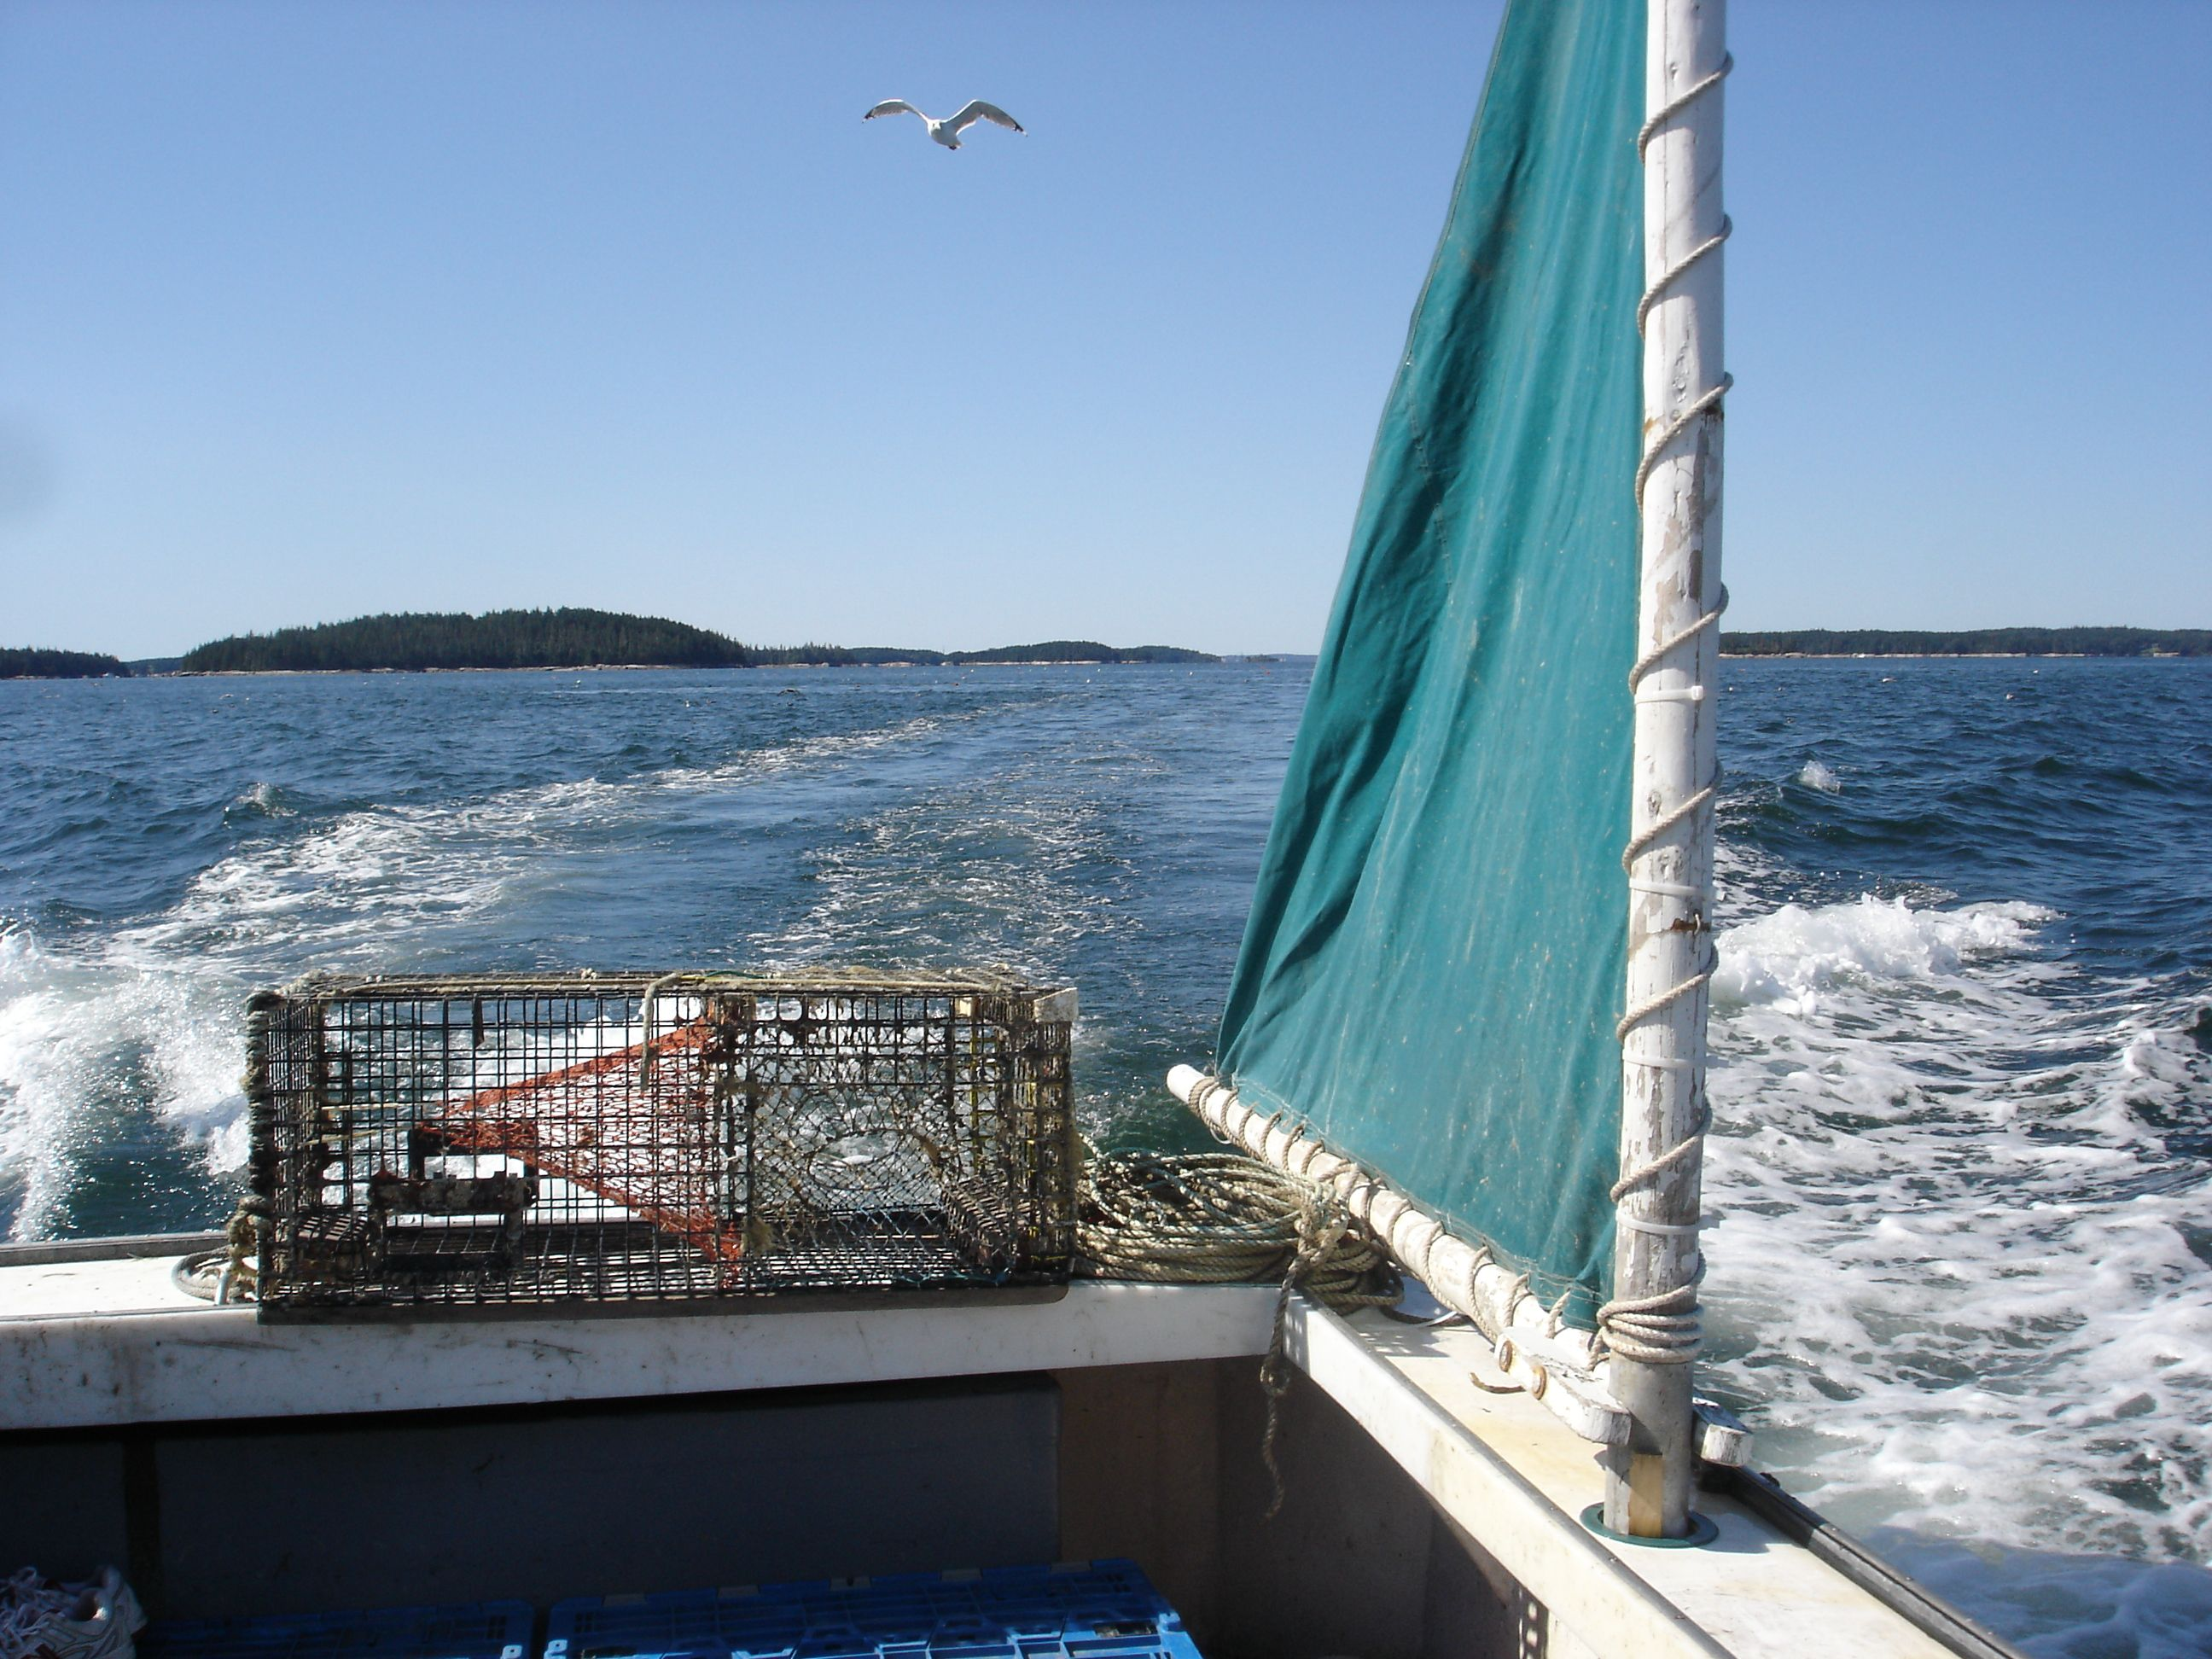 View from the stern of a Maine lobster boat on the rockbound coast of Maine.